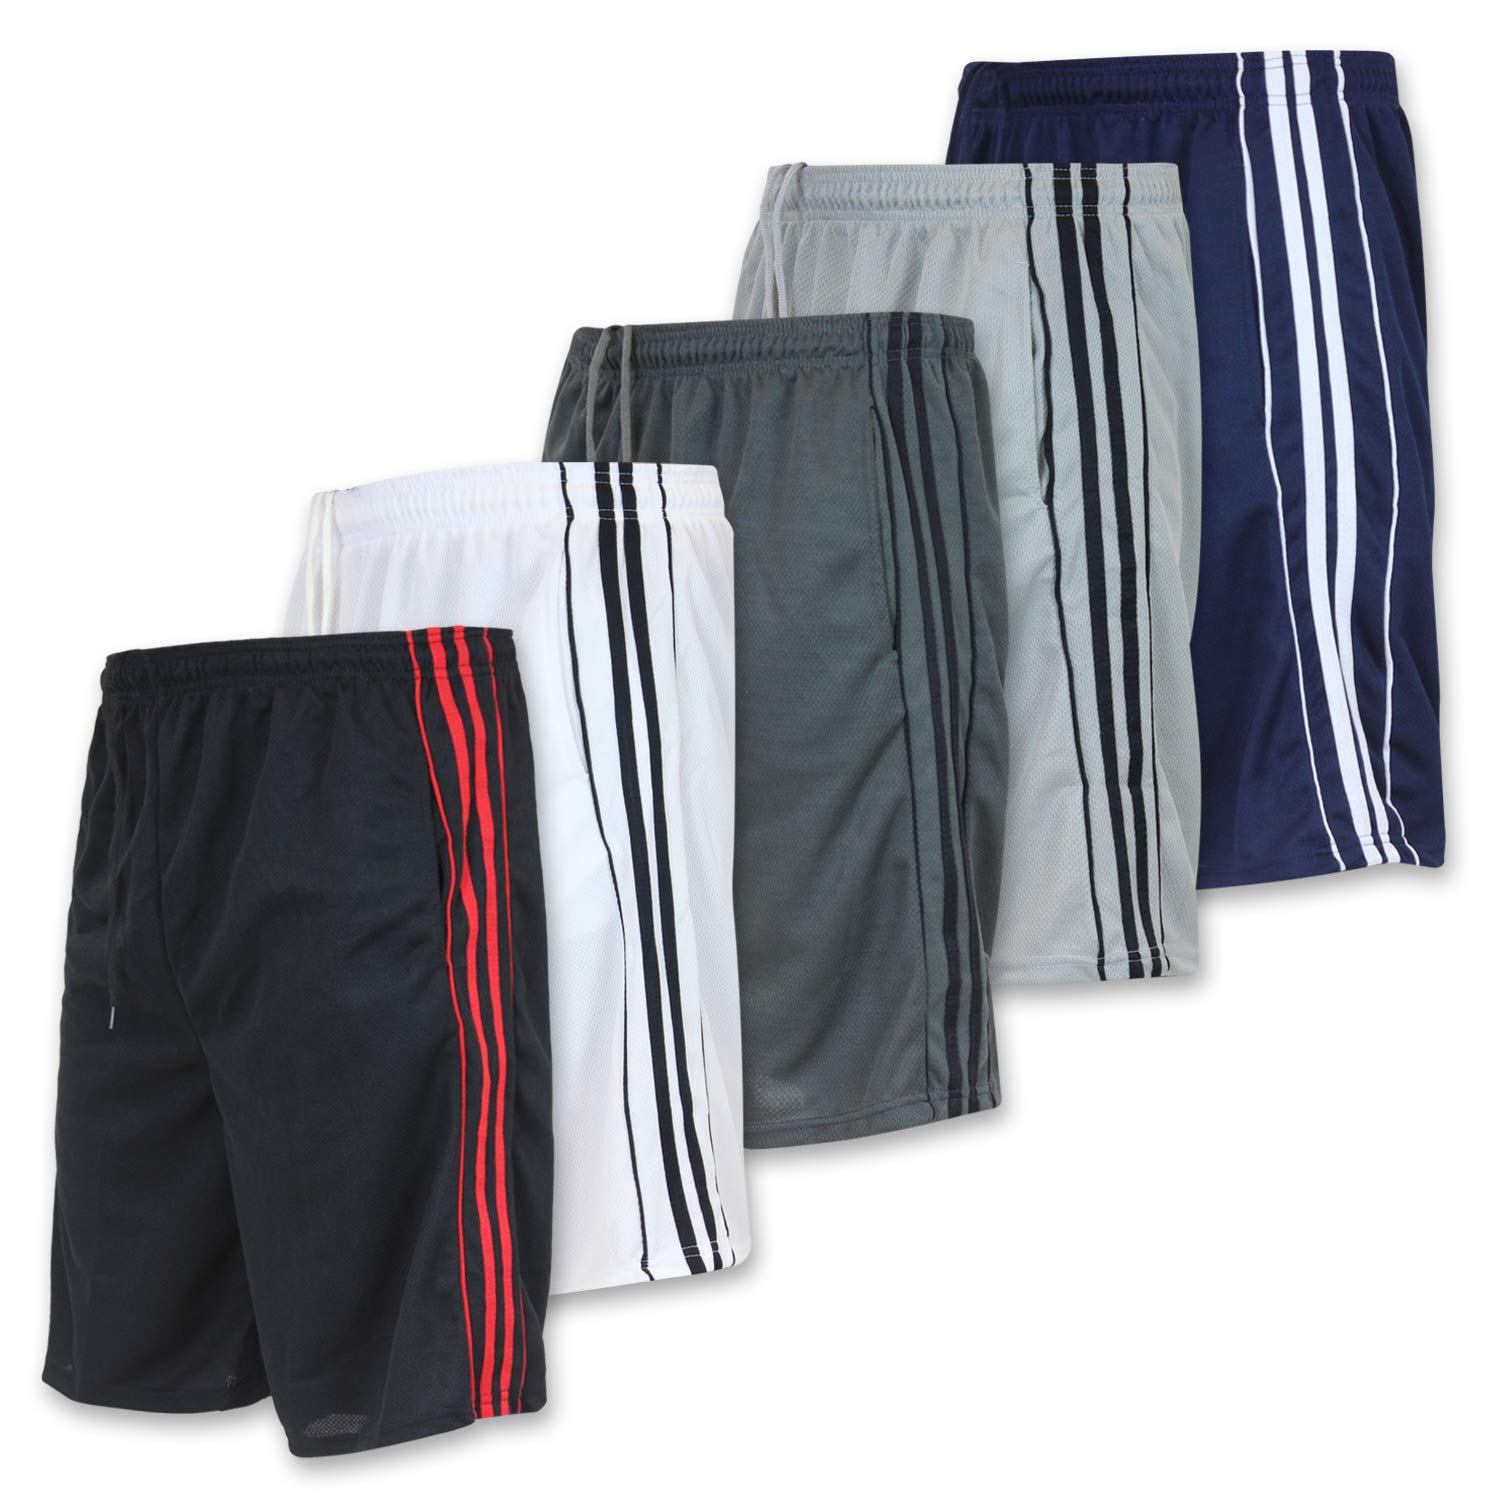 Men's Active Athletic Basketball Essentials Performance Gym Workout Shorts with Pockets - Set 6-5 Pack, S